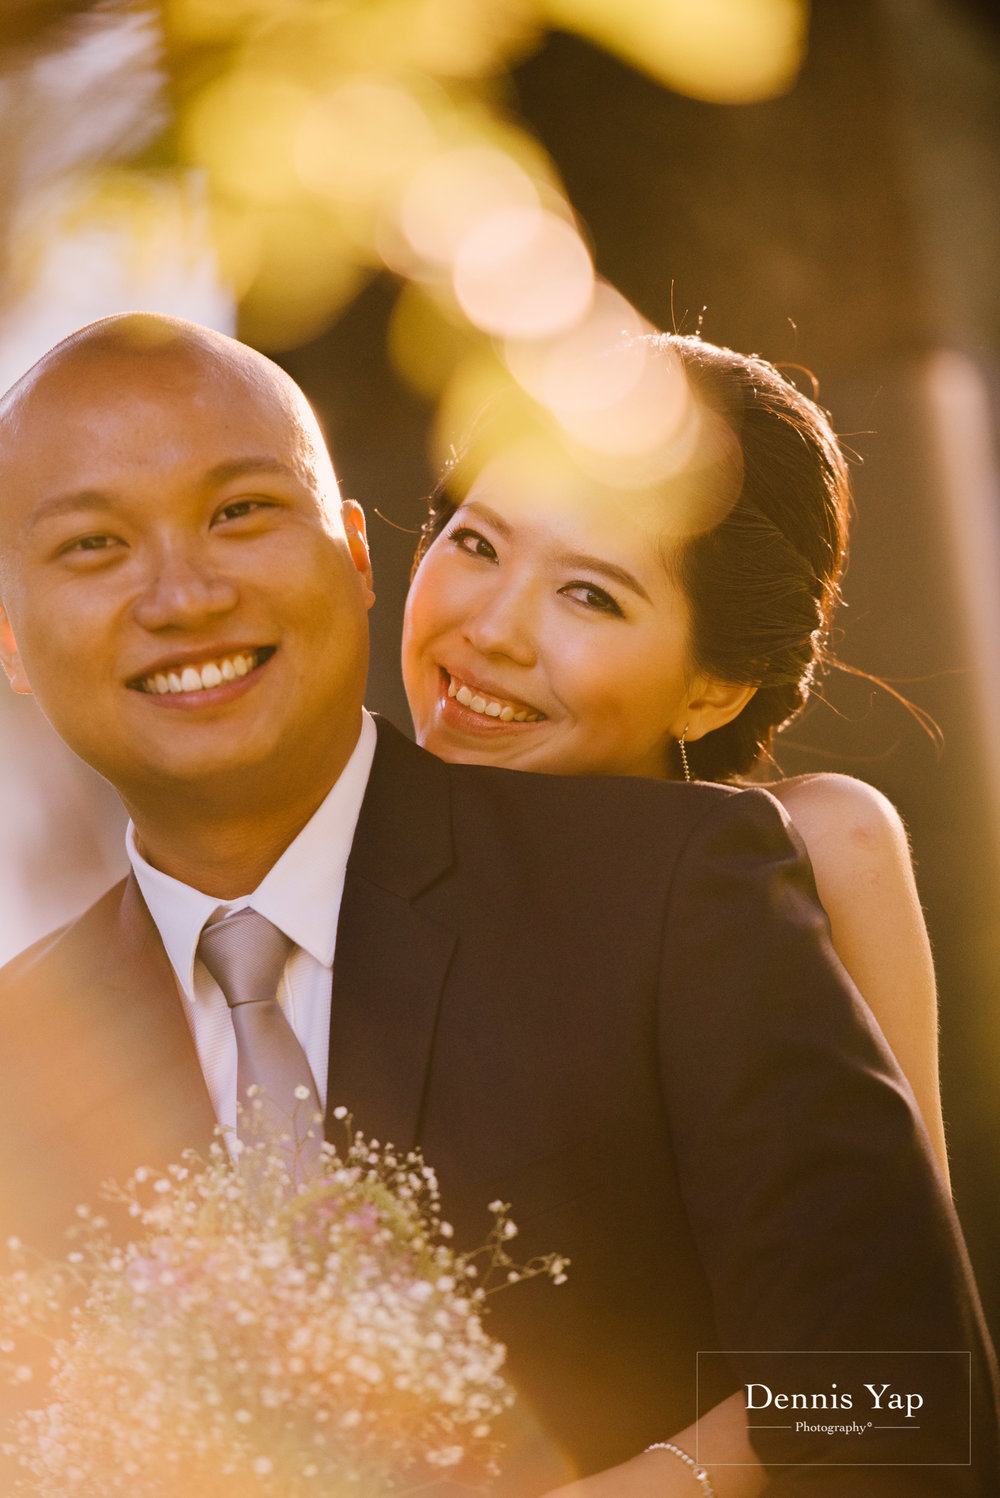 adrian belle melbourne pre wedding sunset beloved dennis yap photography malaysia top wedding photographer-22.jpg